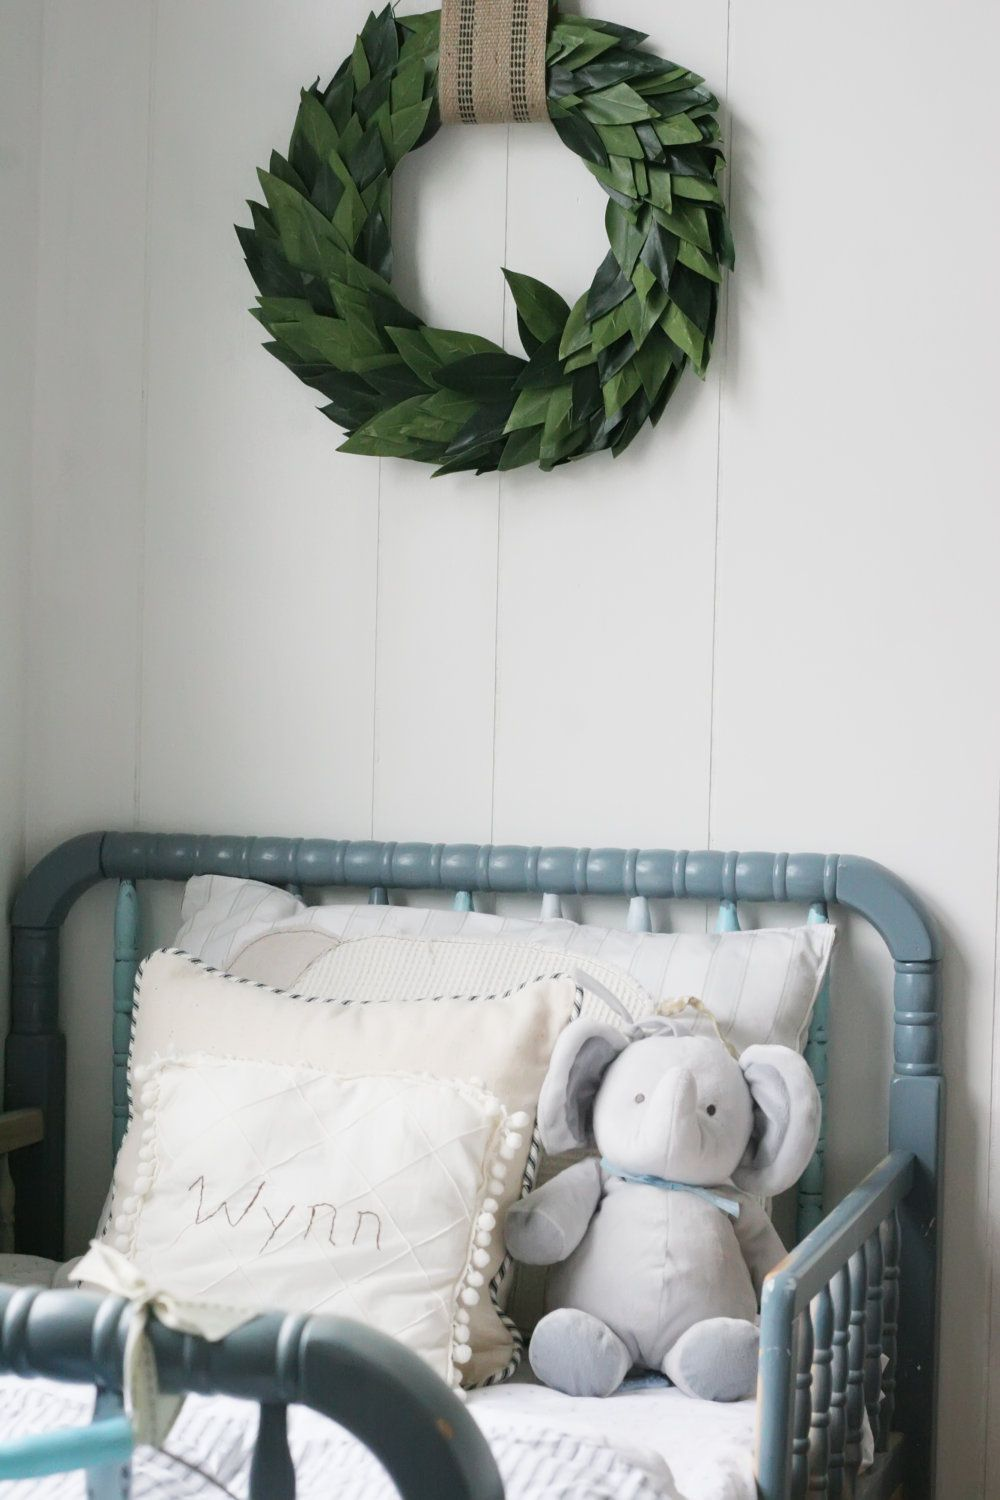 Toddler bed rail pictures to pin on pinterest - Hand Painted Jenny Lind Toddler Bed